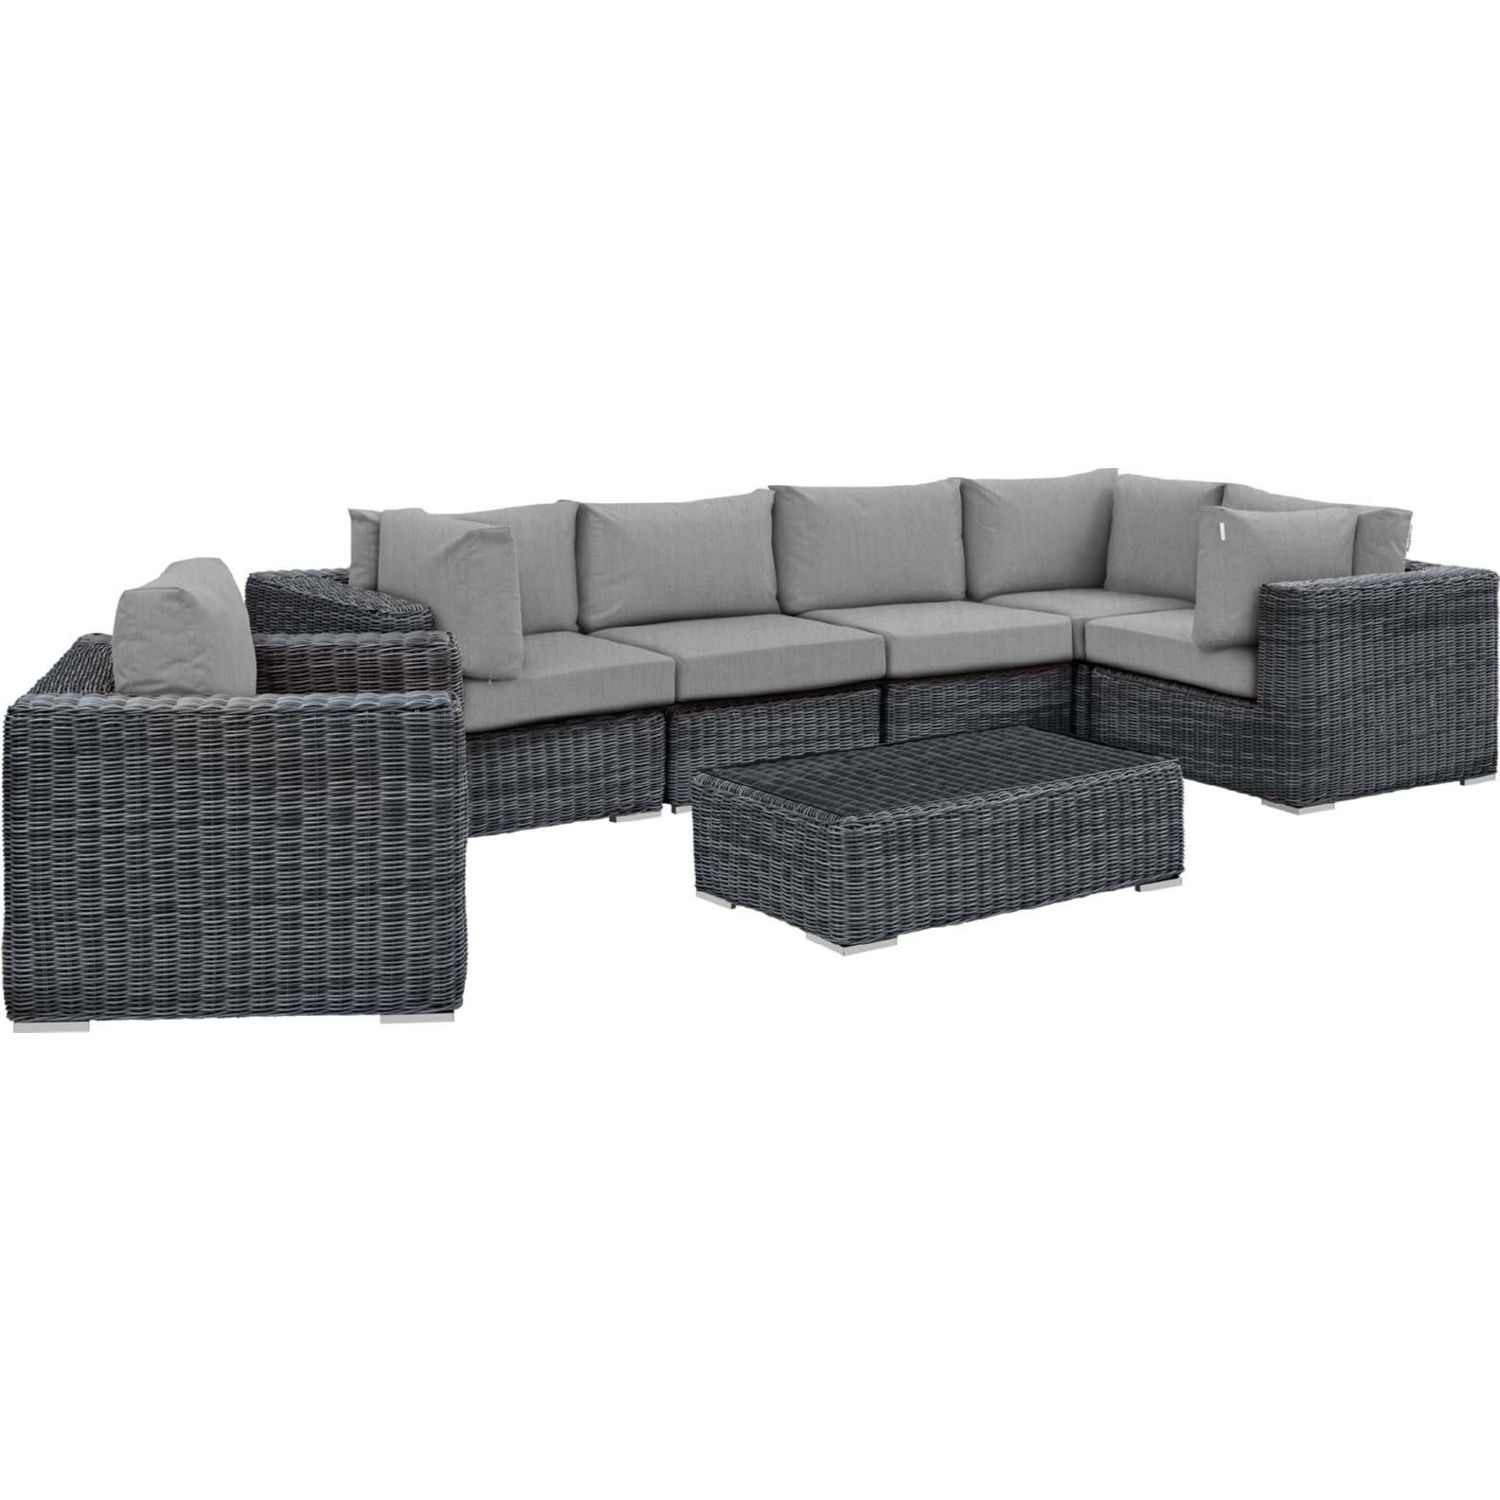 Summon 7 Piece Outdoor Sectional Sofa Set in PE Rattan & Gray Sunbrella® by  Modway